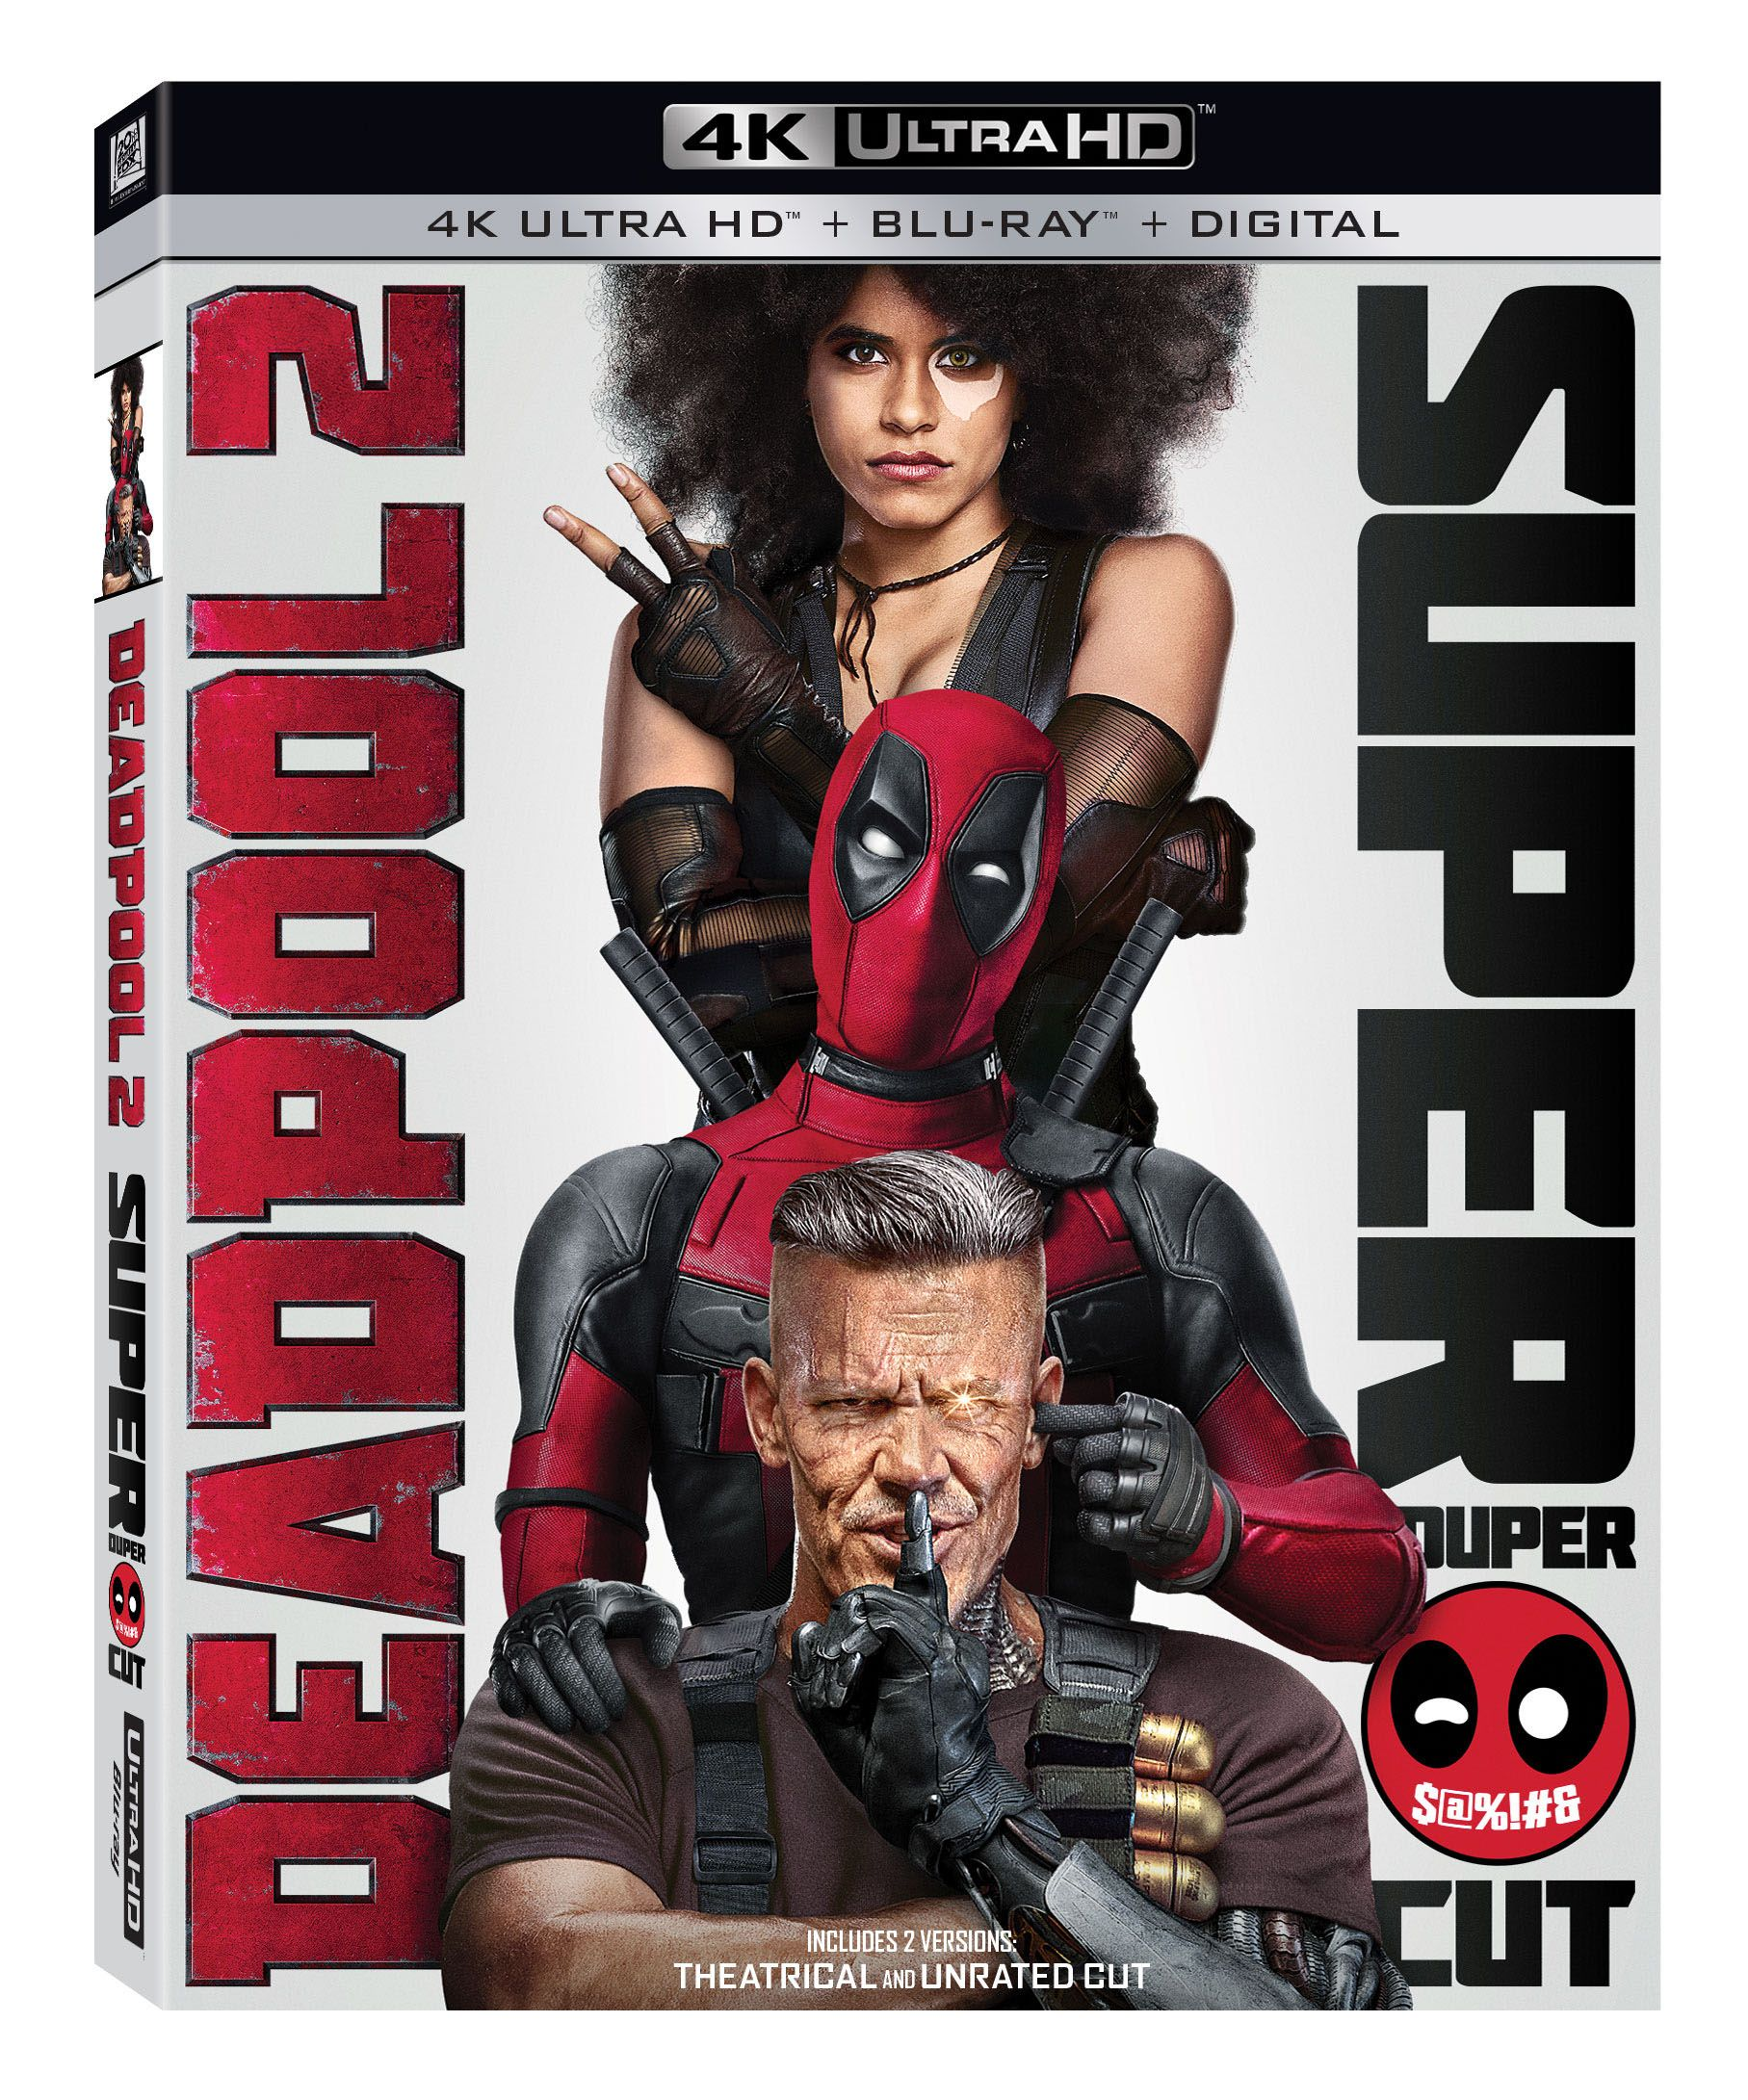 Download Deadpool 2 Drinking Game  Pictures